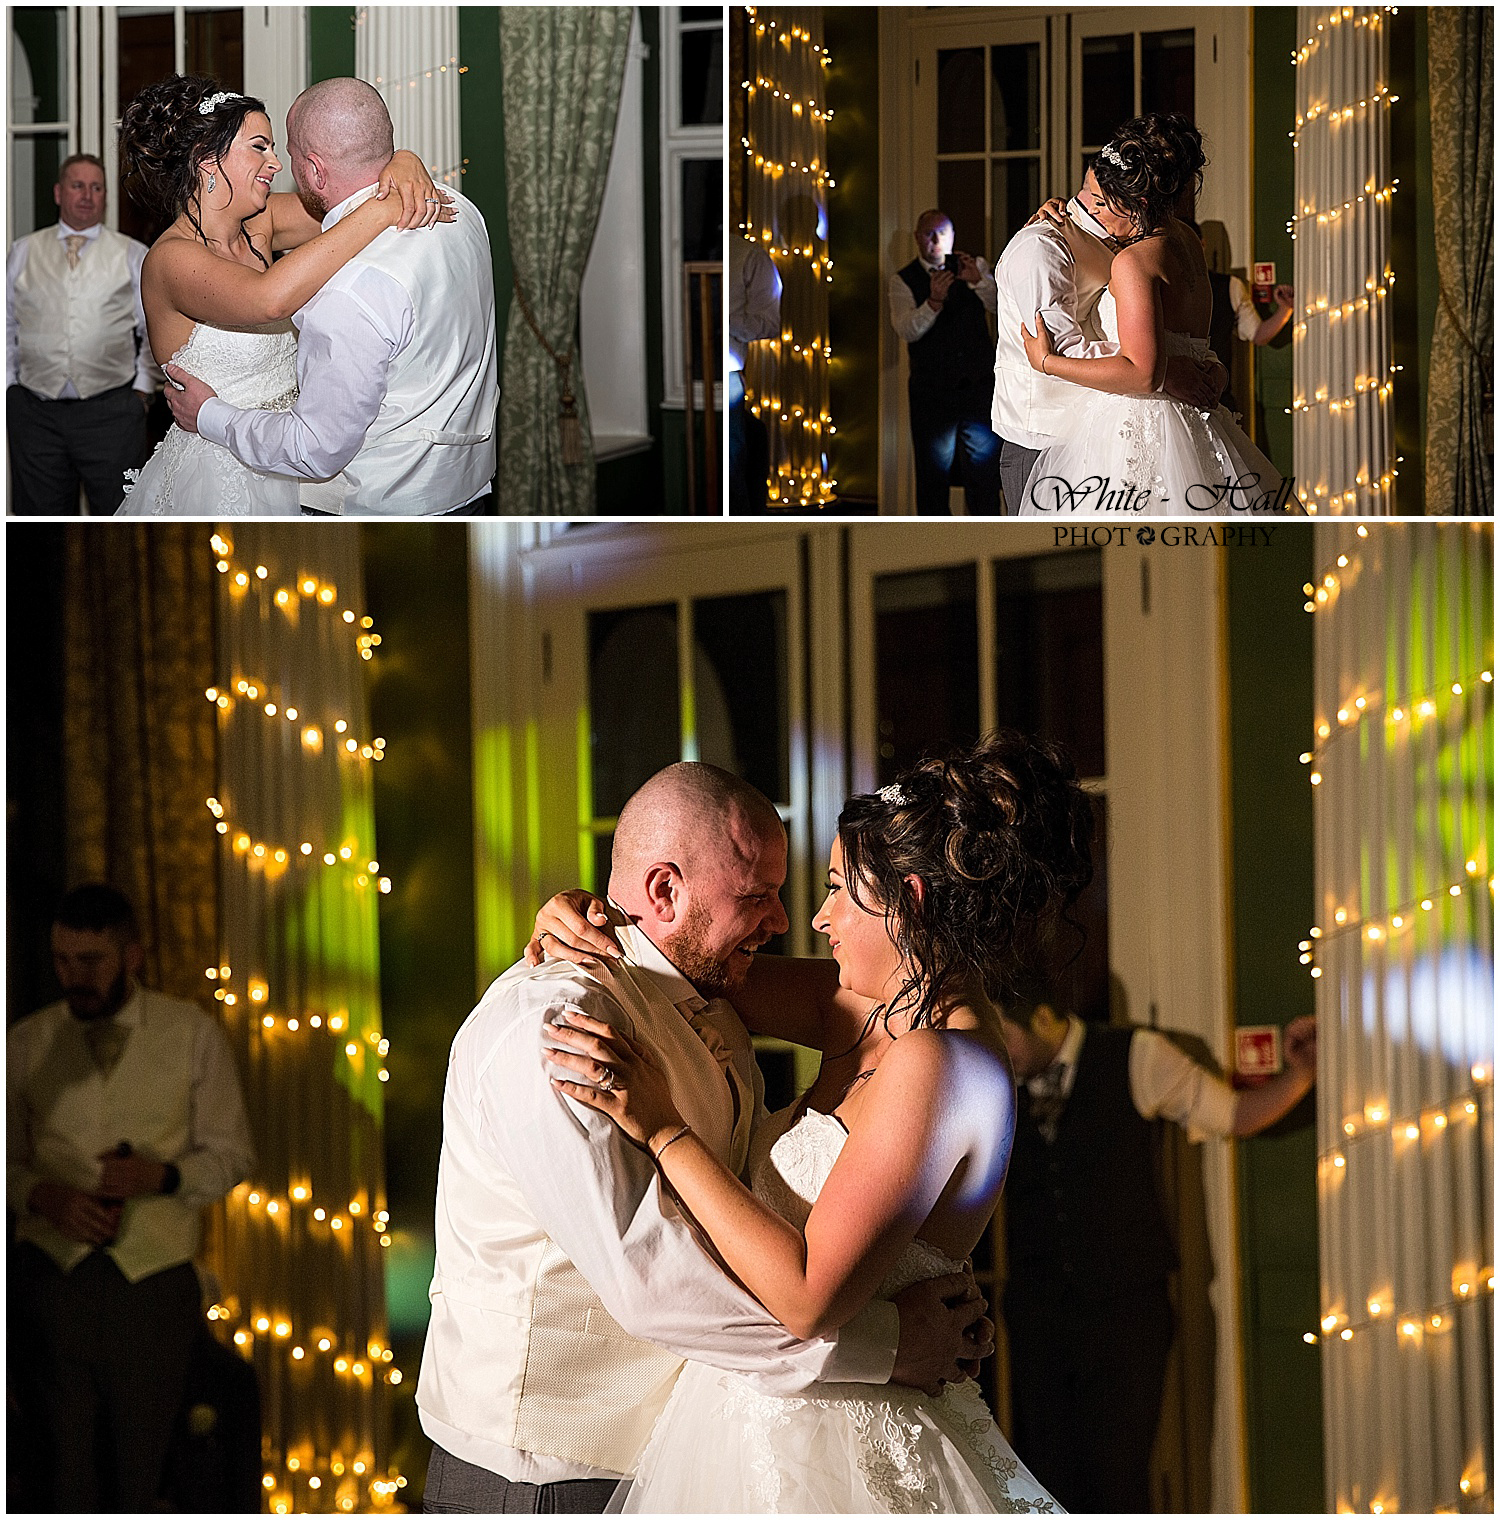 Wedding Photography // Laura & Martyn – Hazlewood Castle, Leeds.